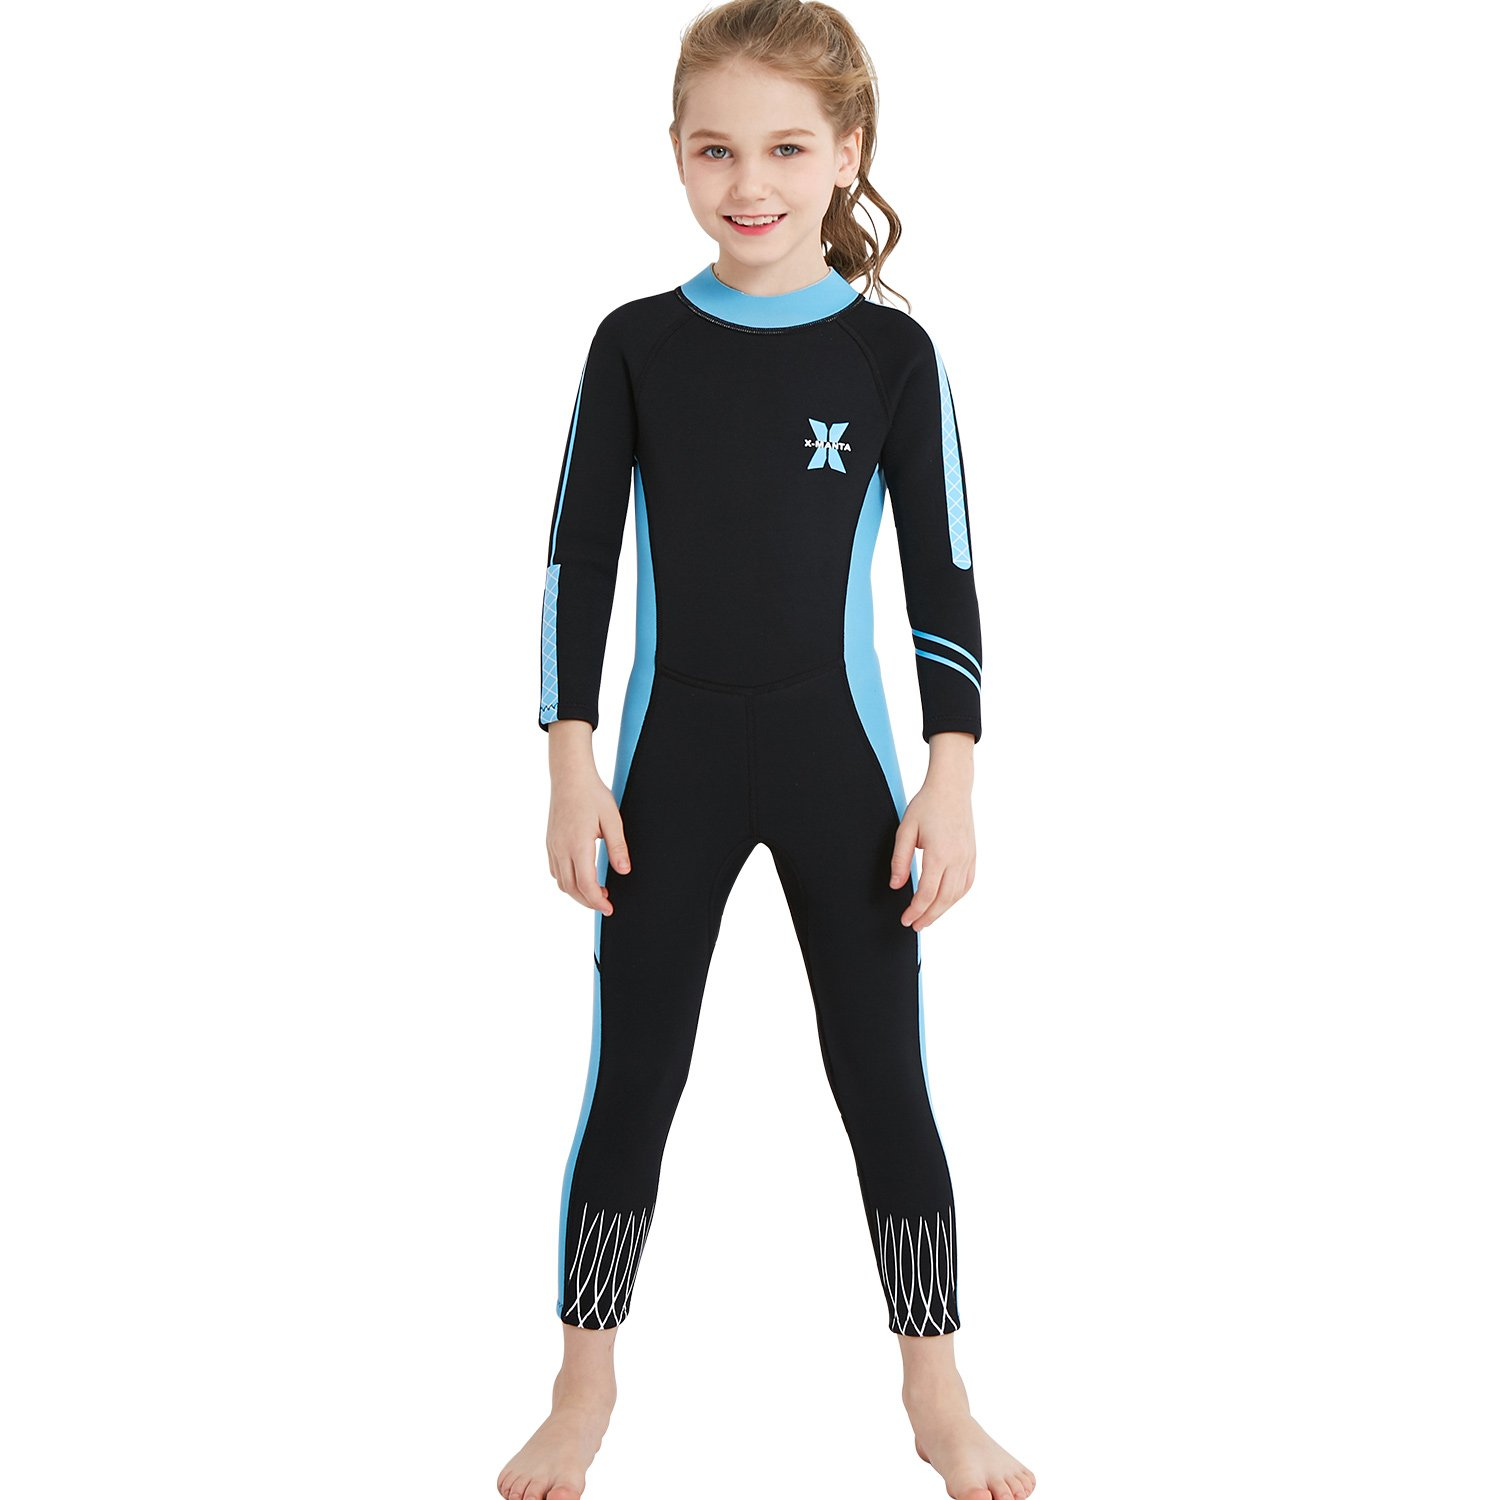 d139c3ac35 Gogokids Kids Wetsuit Boys Girls Rash Guard One Piece Thermal Swimsuits  2.5mm Neoprene Diving Snorkelling Suit UV 50 Sun Protection